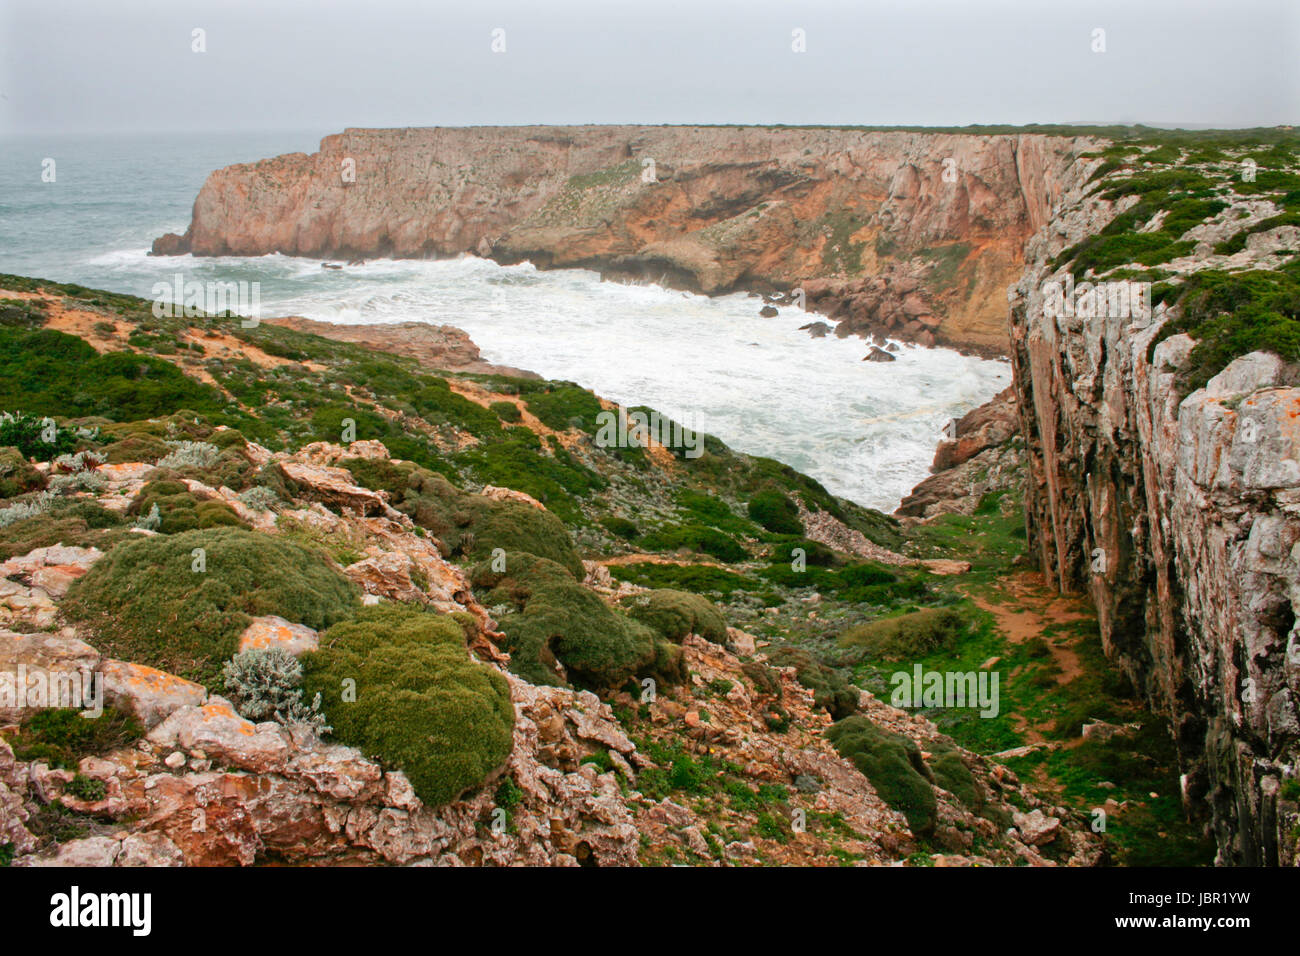 Cabo de Sao Vicente, the Most South Westerly point of Europe, Portugal Stock Photo